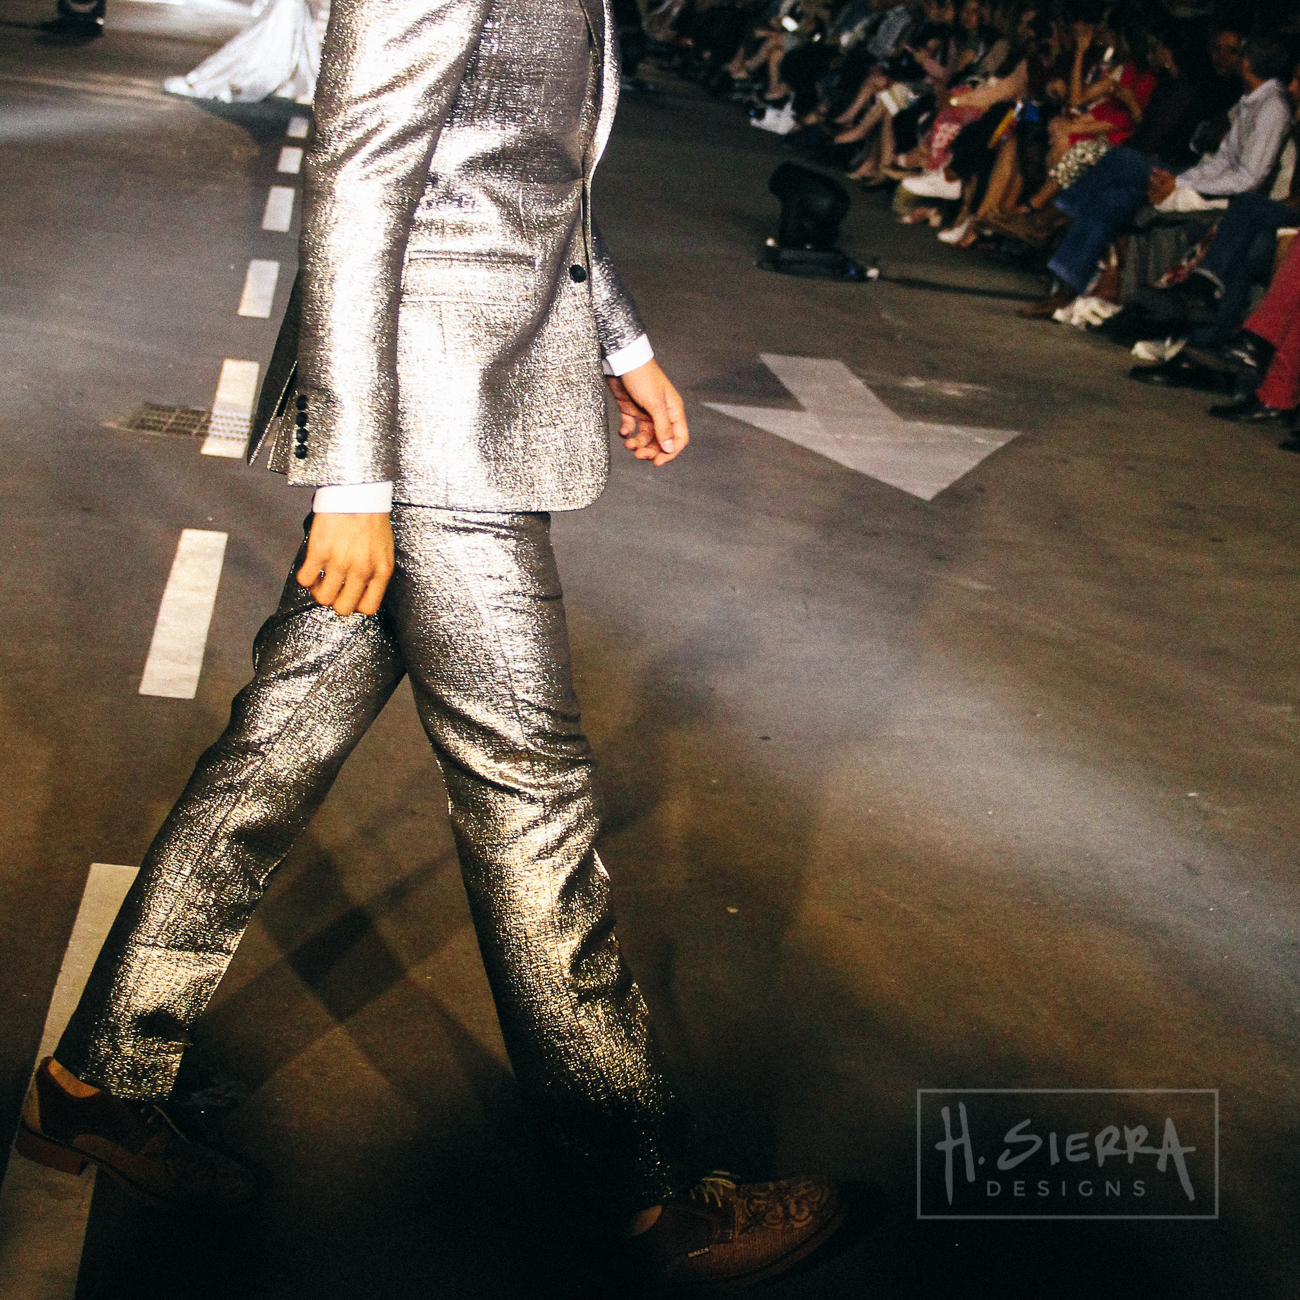 HSD_YOYOBARRIENTOS_RUNWAY-1-65.JPG